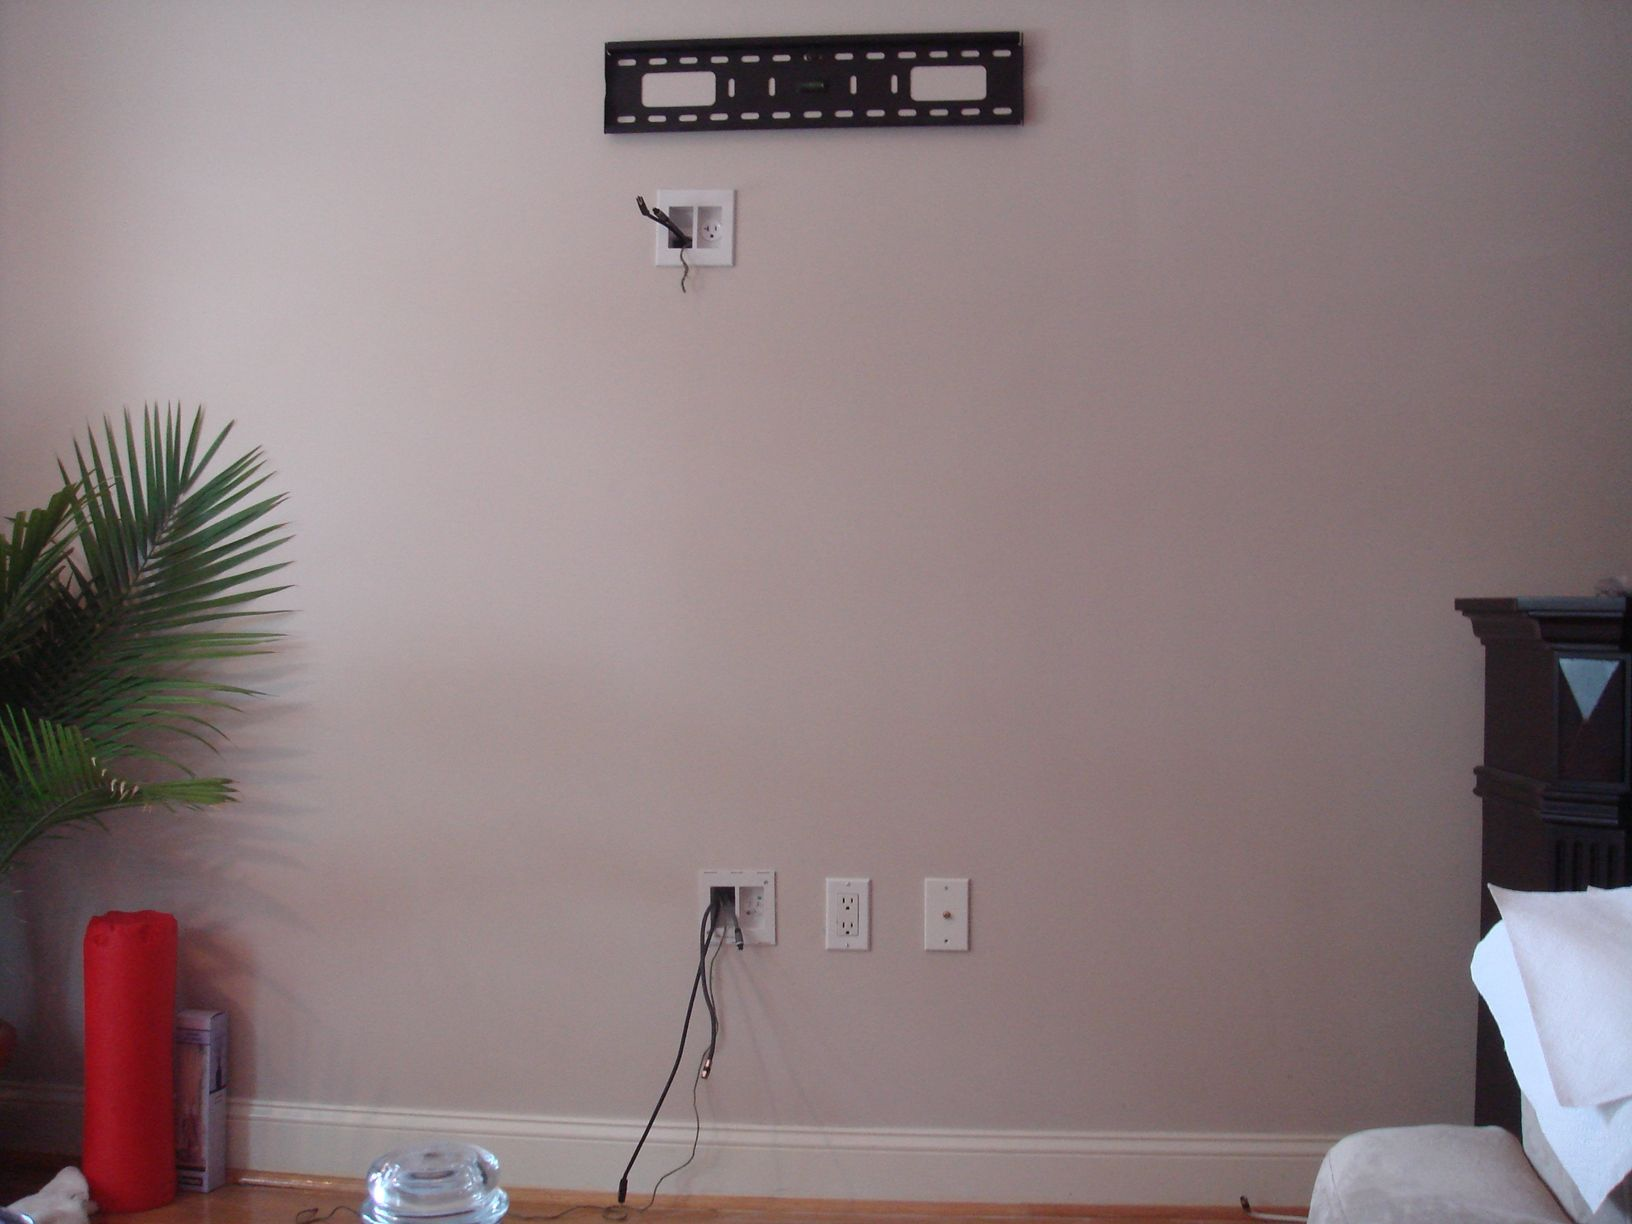 Concealing Wires For Home Theater | Concealing Wires In The Wall With A Power Bridge Before Tv Is